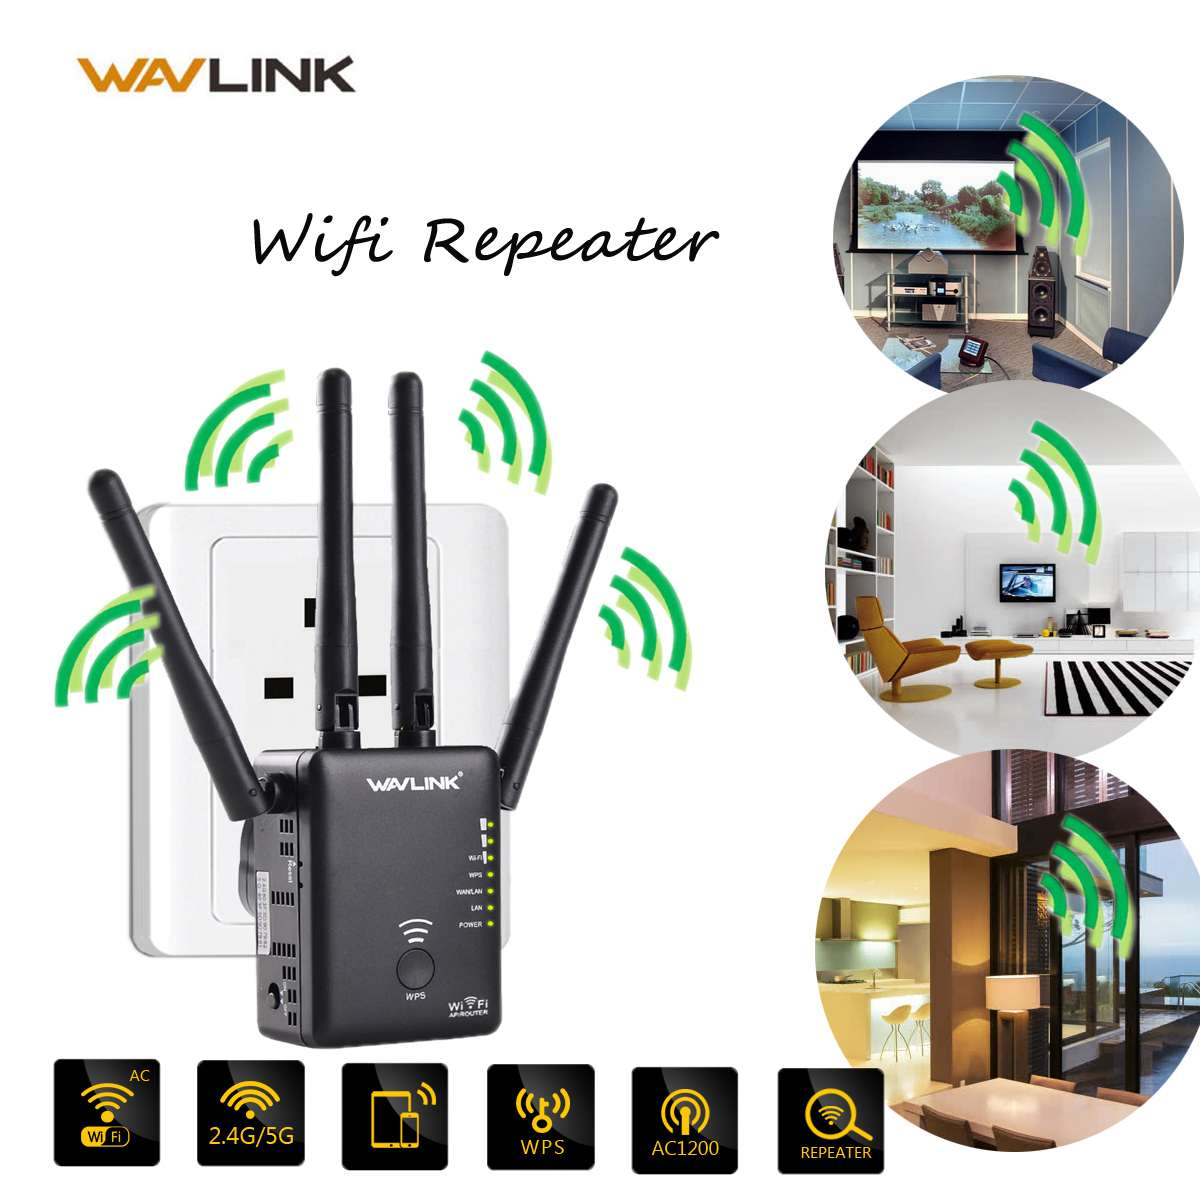 1200Mbps 2.4G&5G Wireless WiFi Repeater for AP/Router 802.11 2X LAN Extender Booster Networking Routers(China)